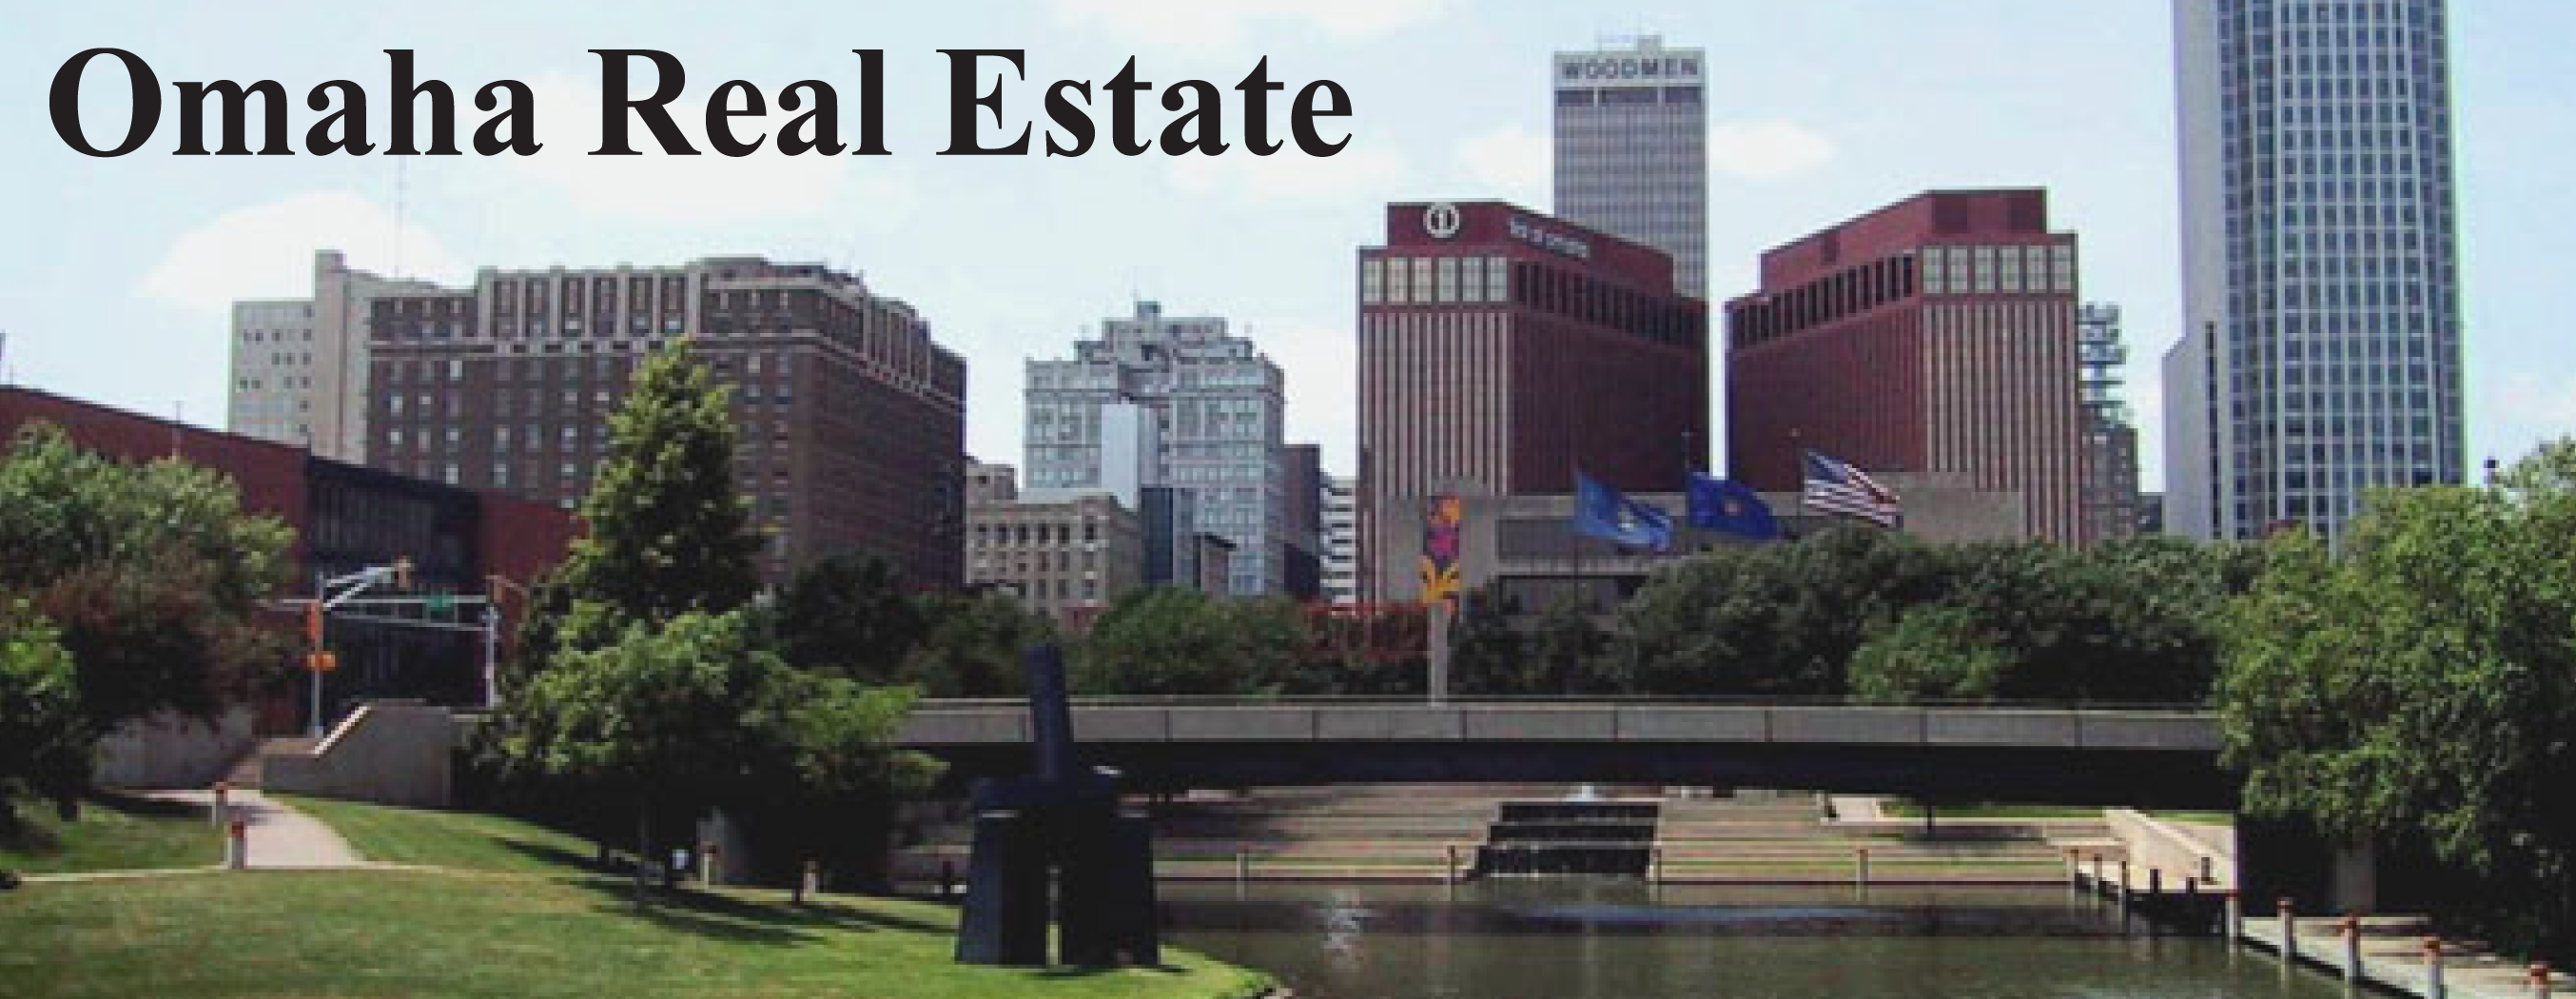 omaha commercial real estate